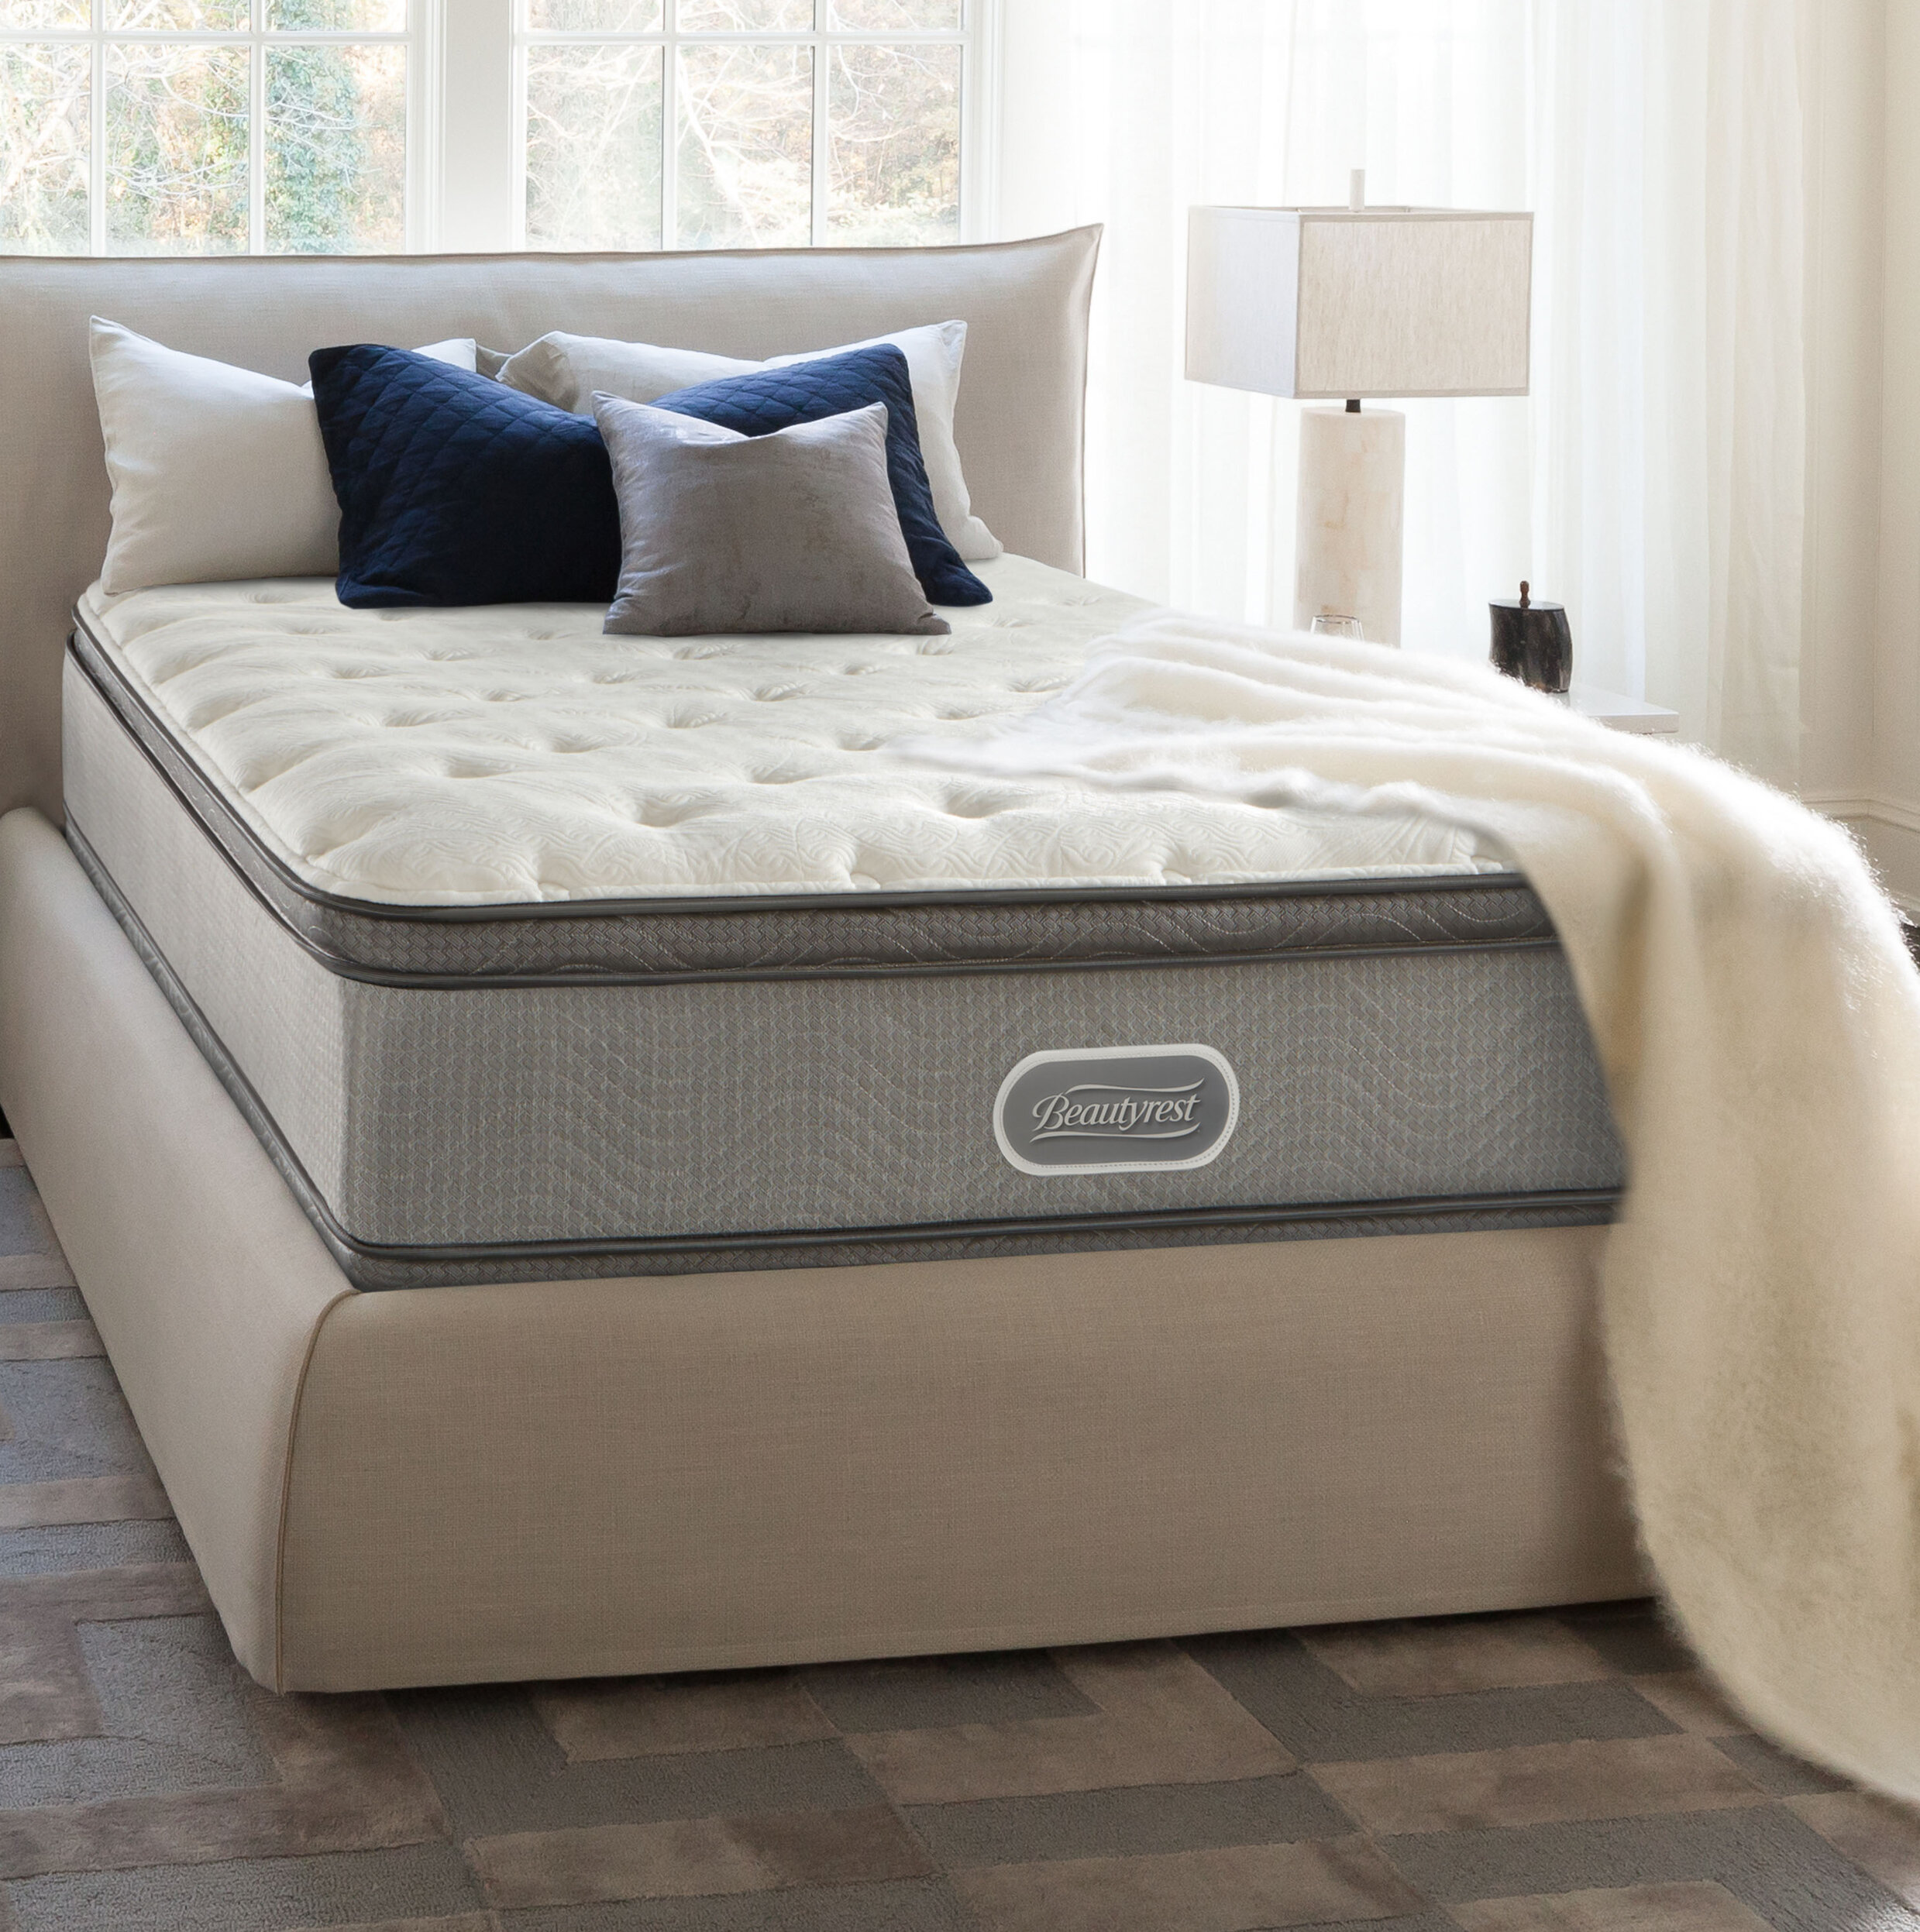 home top topper wayburn super shipping queen garden size serta pillow product mattress overstock perfect inch pillowtop free today sleeper